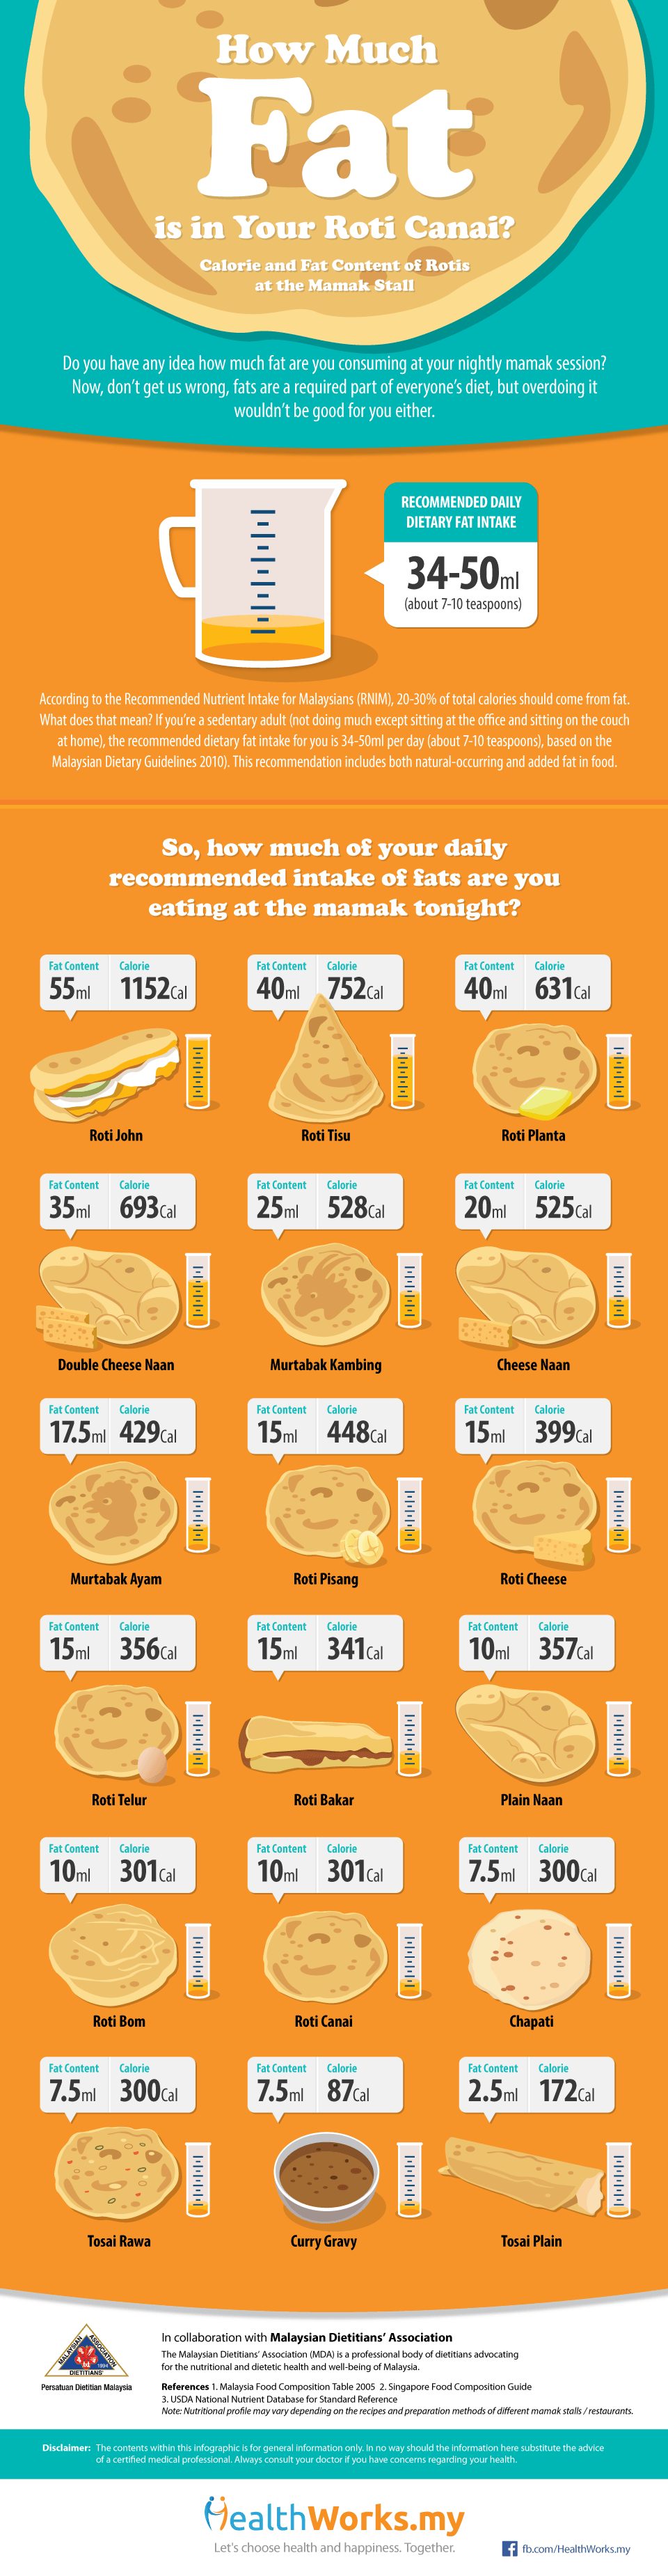 Infographic: How Much Fat is in Your Roti Canai? (Calories & Fat Content of Rotis at the Mamak Stall)